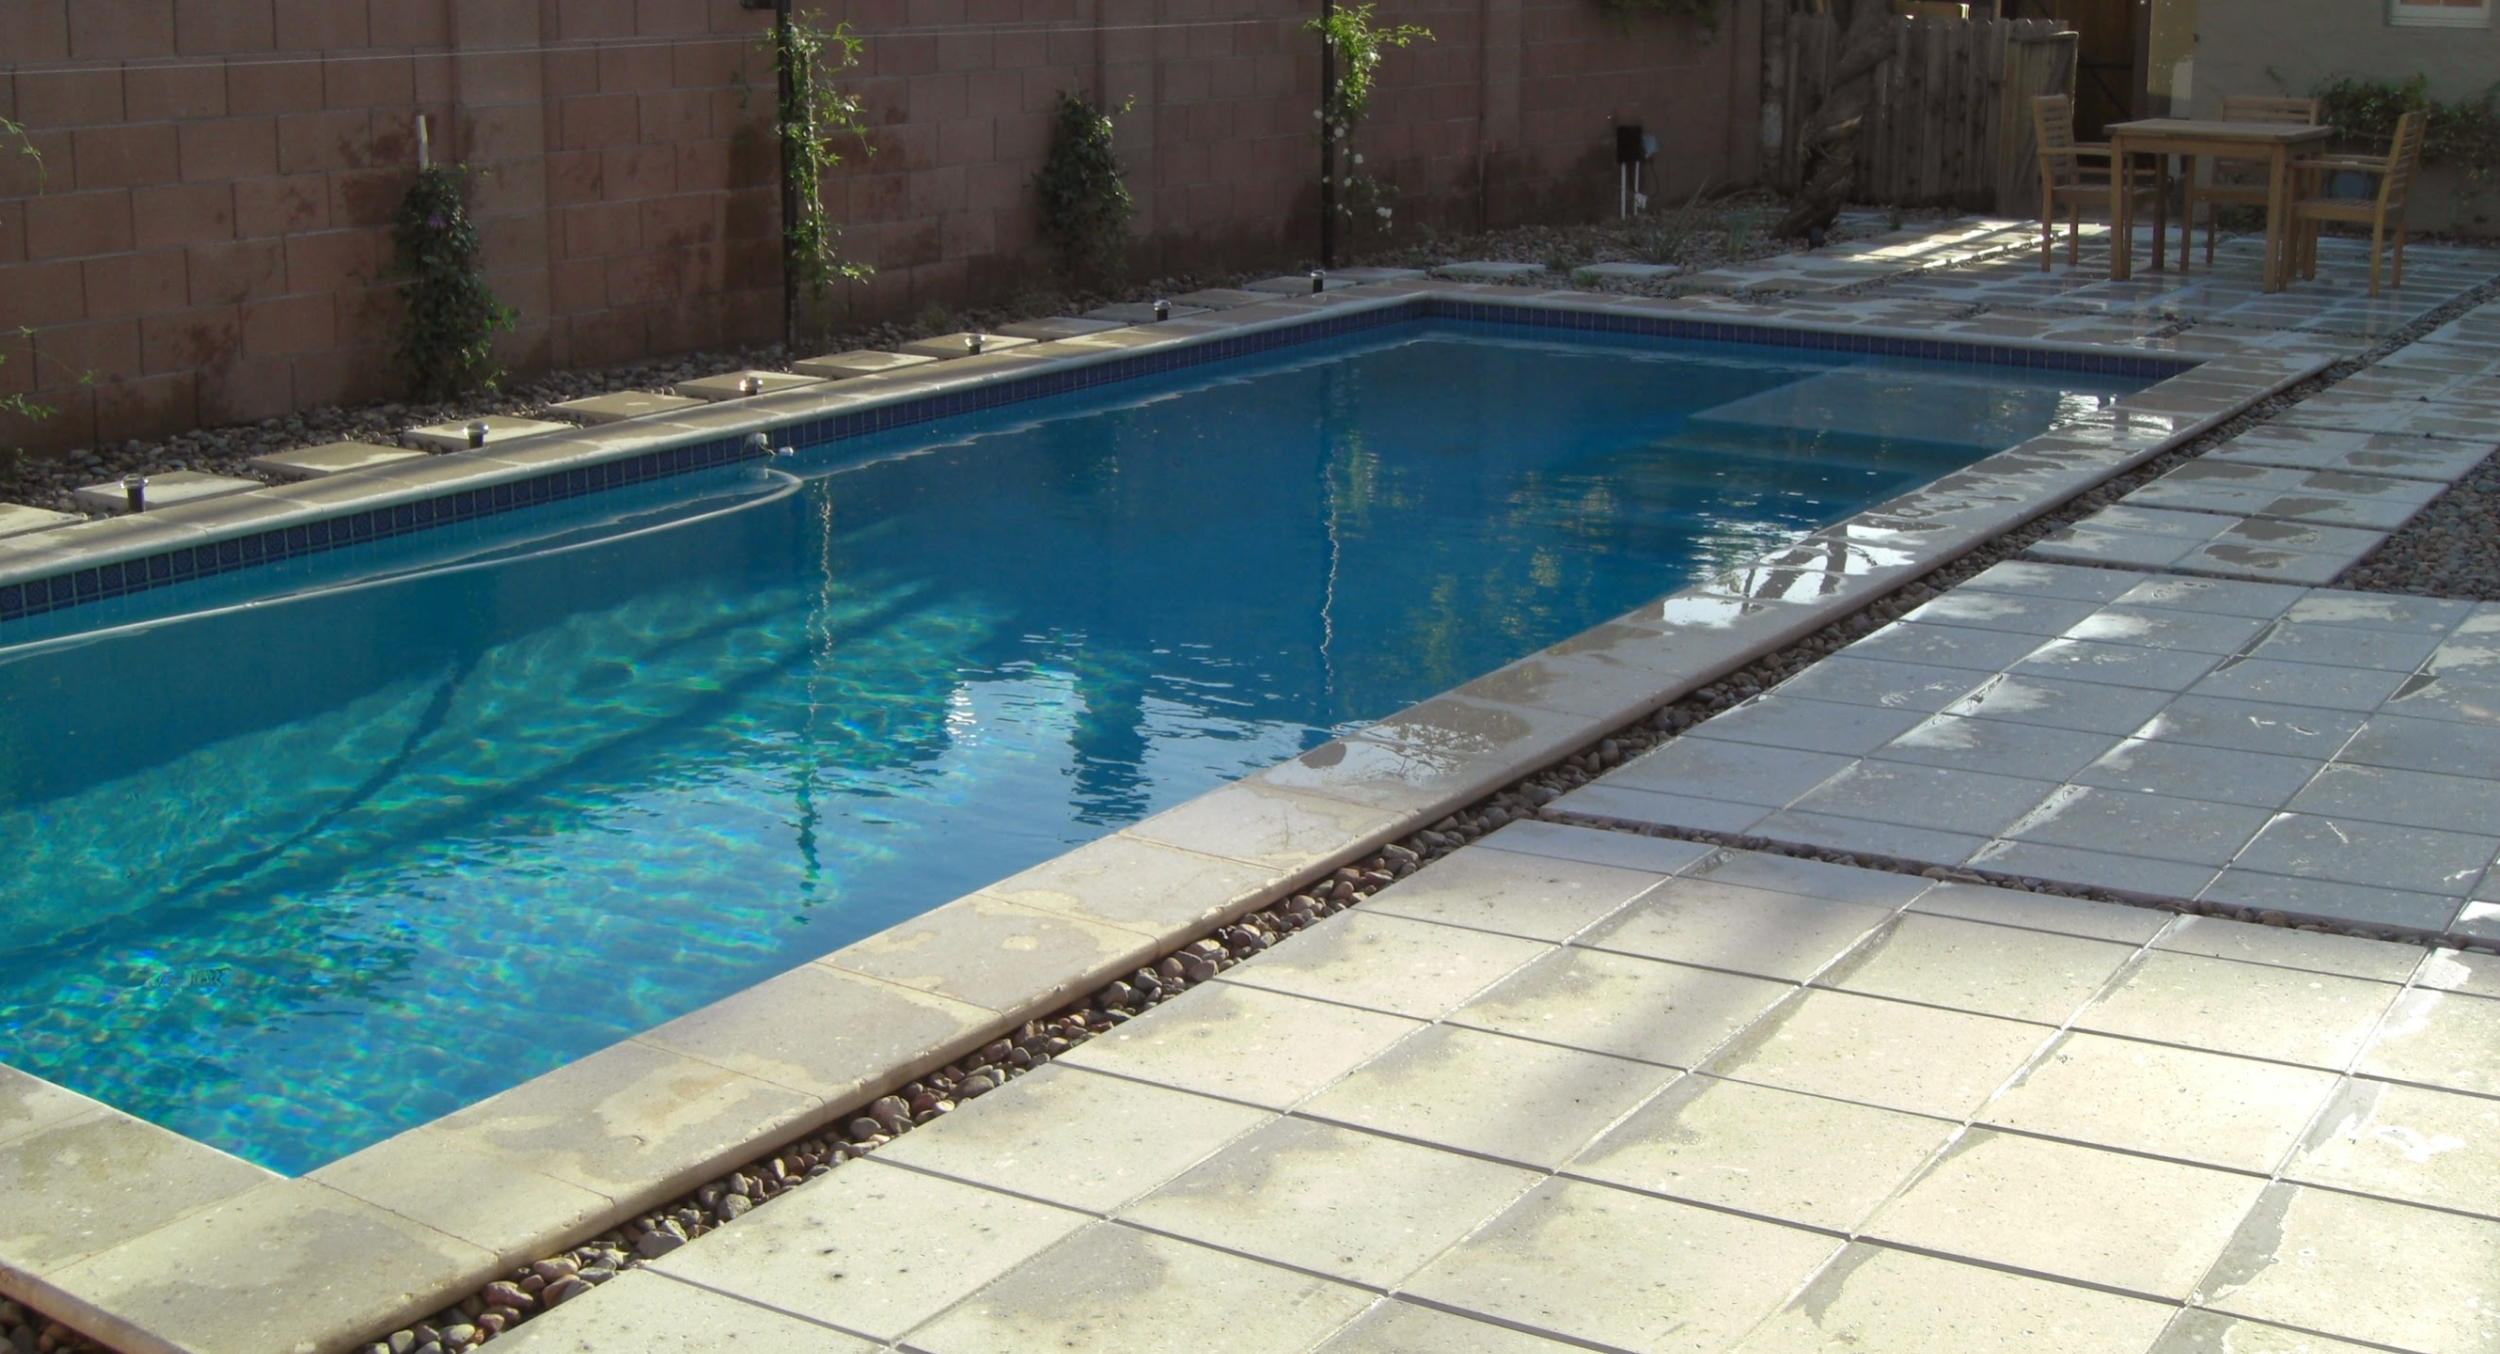 Landscaping on a budget does not mean you can only have Kool Deck. Working with Desert Crest, your Scottsdale, Phoenix, or Glendale pool deck can look far better, like this modern, geometric design we did for a client with a tight budget.